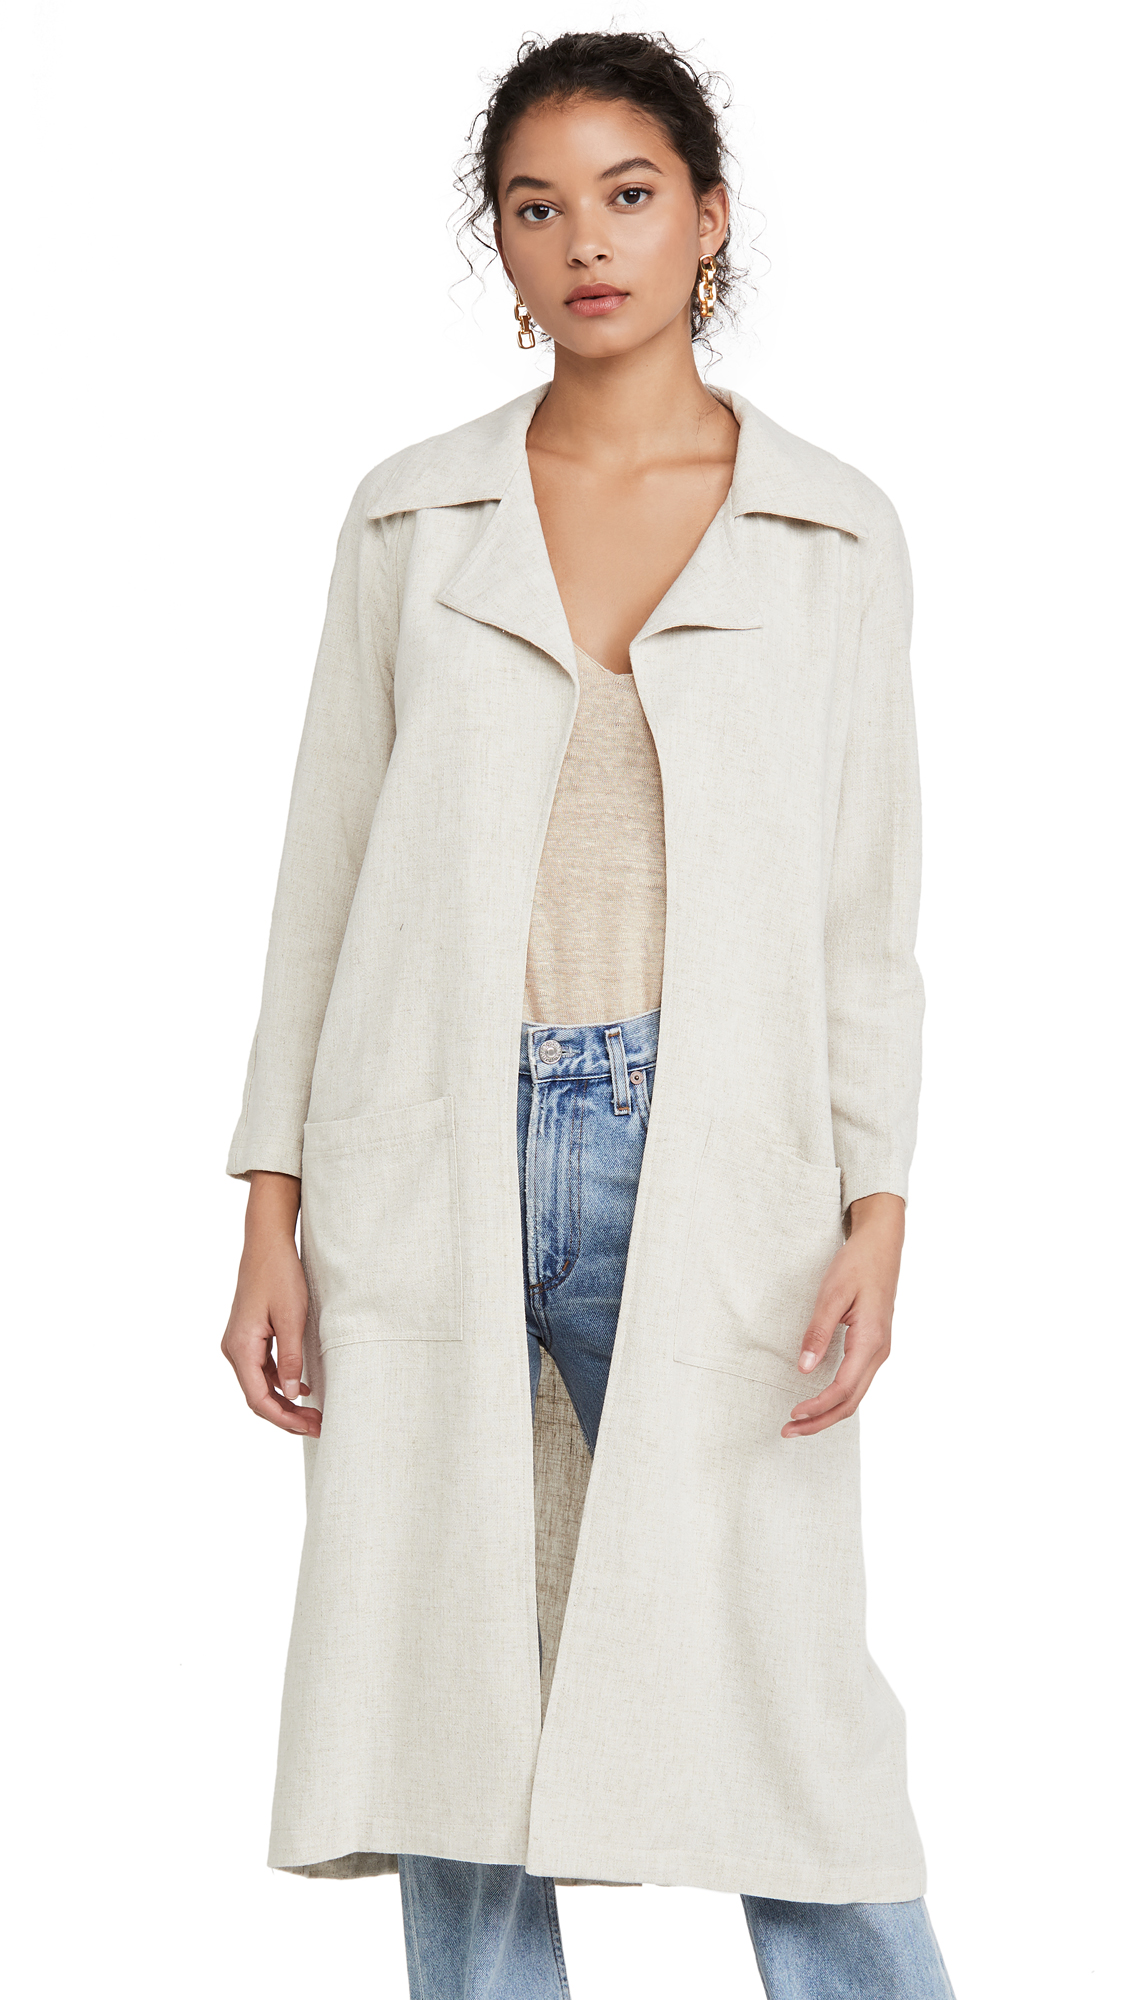 Buy Rachel Pally Linen Cary Trench online beautiful Rachel Pally Jackets, Coats, Trench Coats